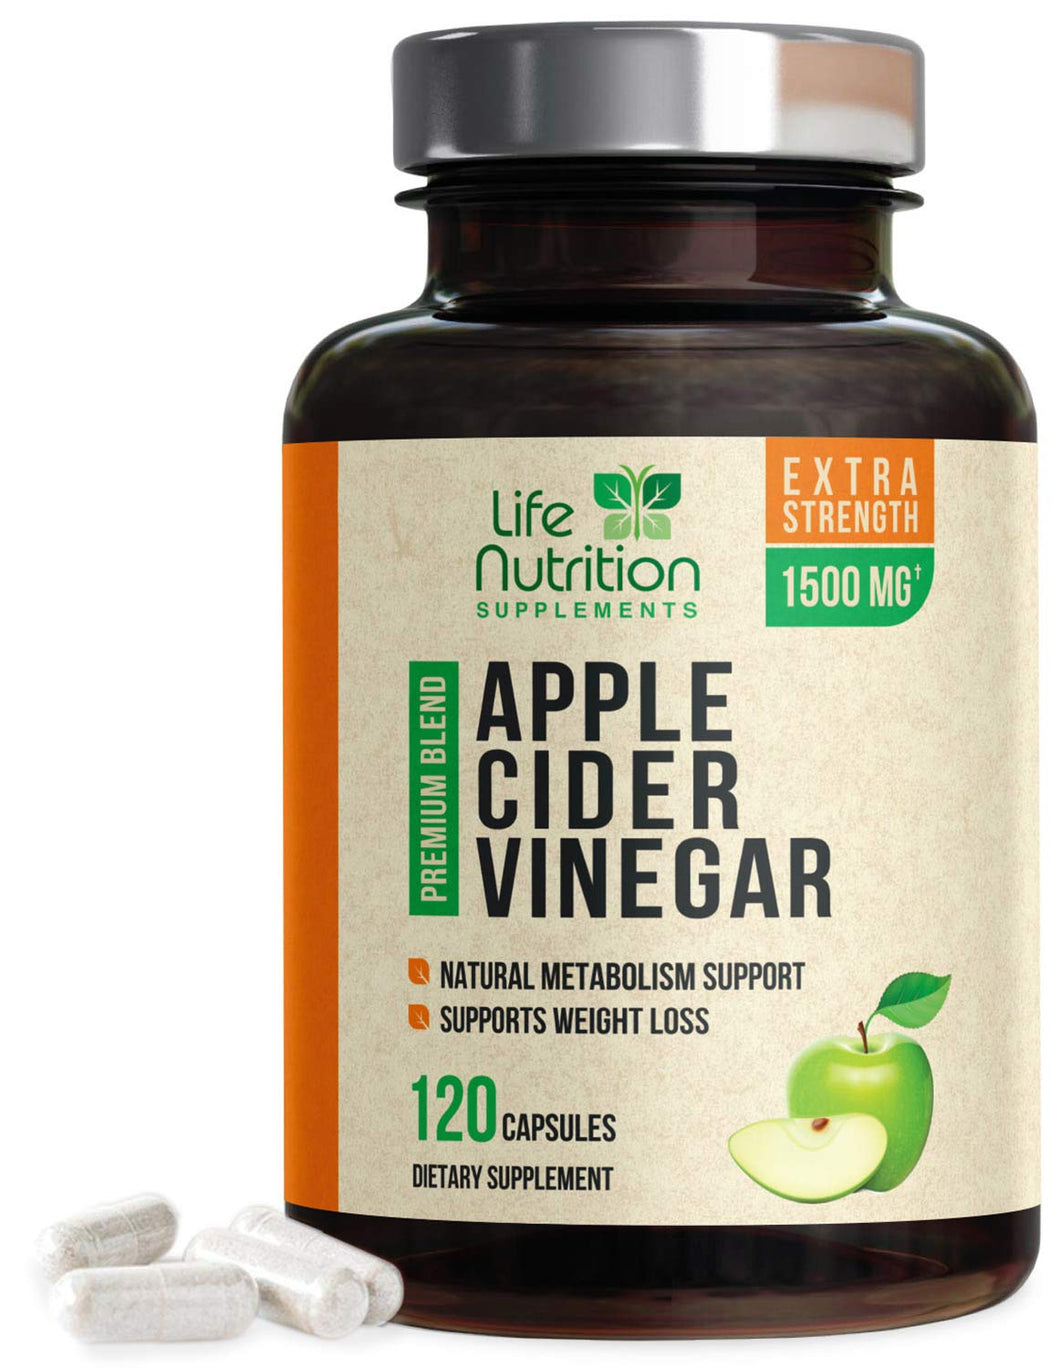 100% Raw Apple Cider Vinegar Capsules Highest Potency 1500mg - Weight Management & Metabolism Booster, Made in USA, Best Vegan ACV Pills, Heartburn Relief & Detox Cleanse Supplement - 120 Capsules